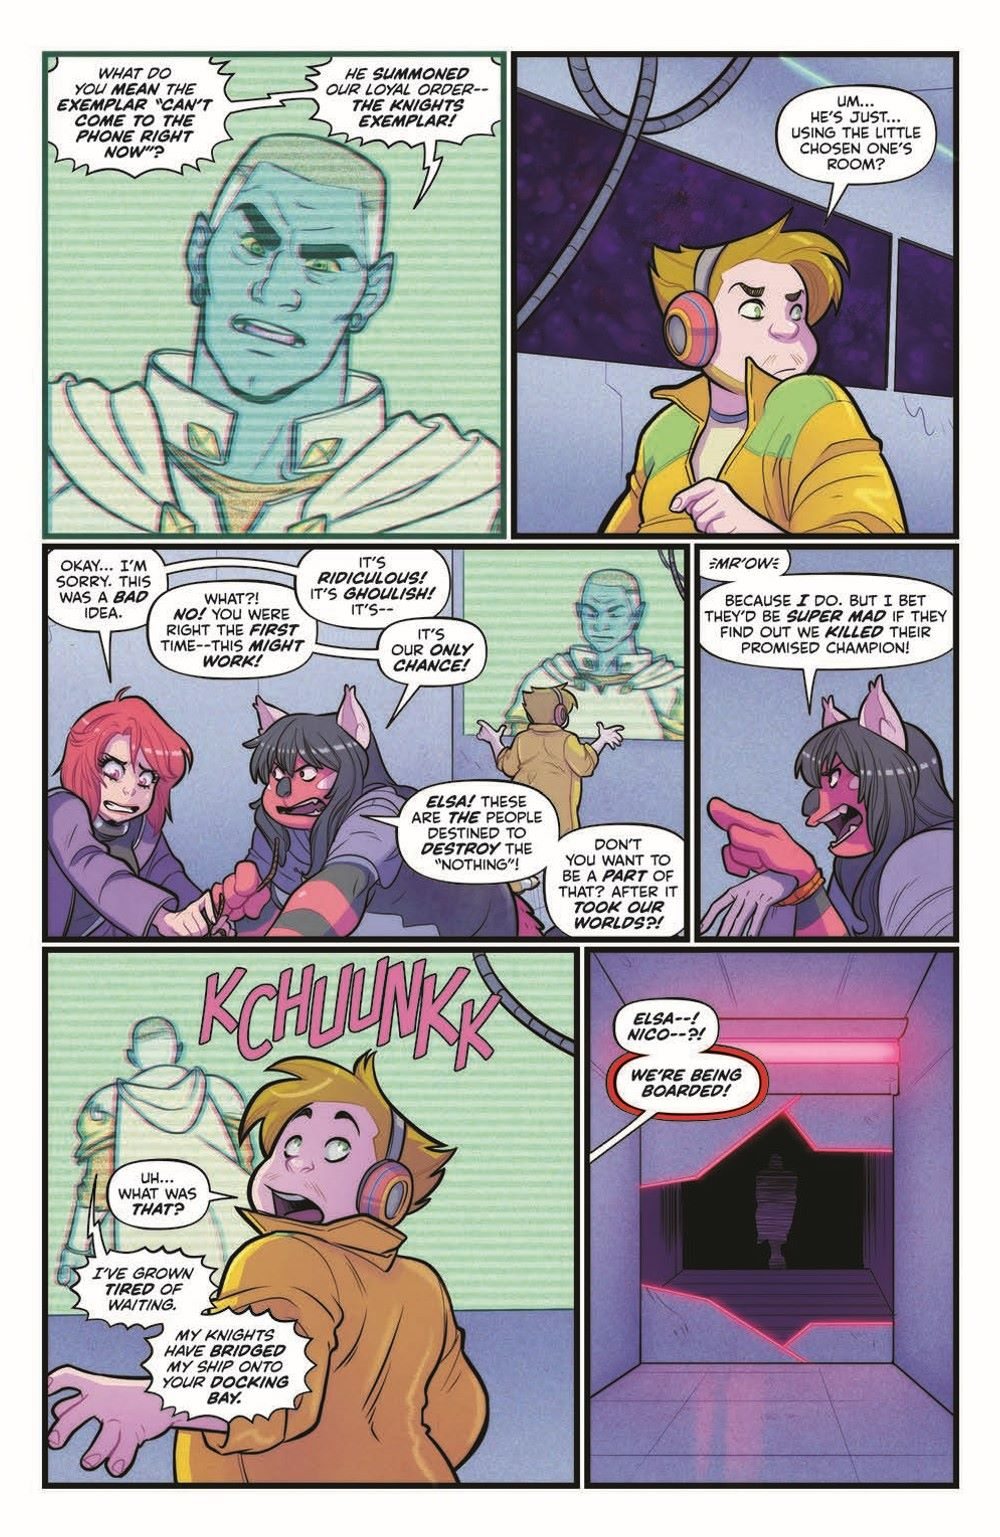 VoyageToTheStars_02-pr-4 ComicList Previews: VOYAGE TO THE STARS #3 (OF 4)